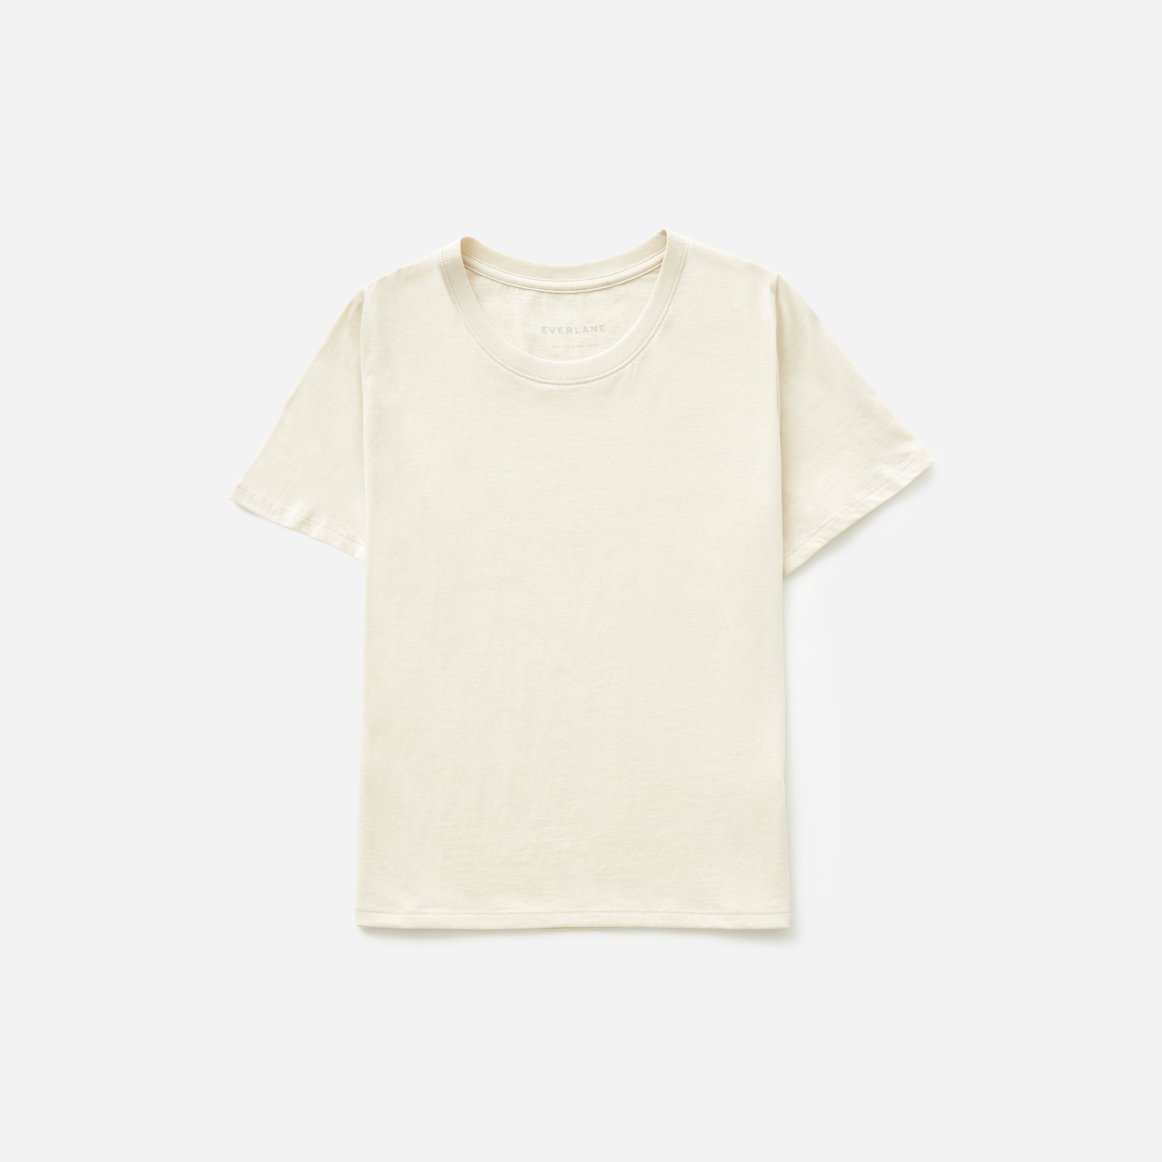 Women's Cotton Box-Cut Tee | Everlane